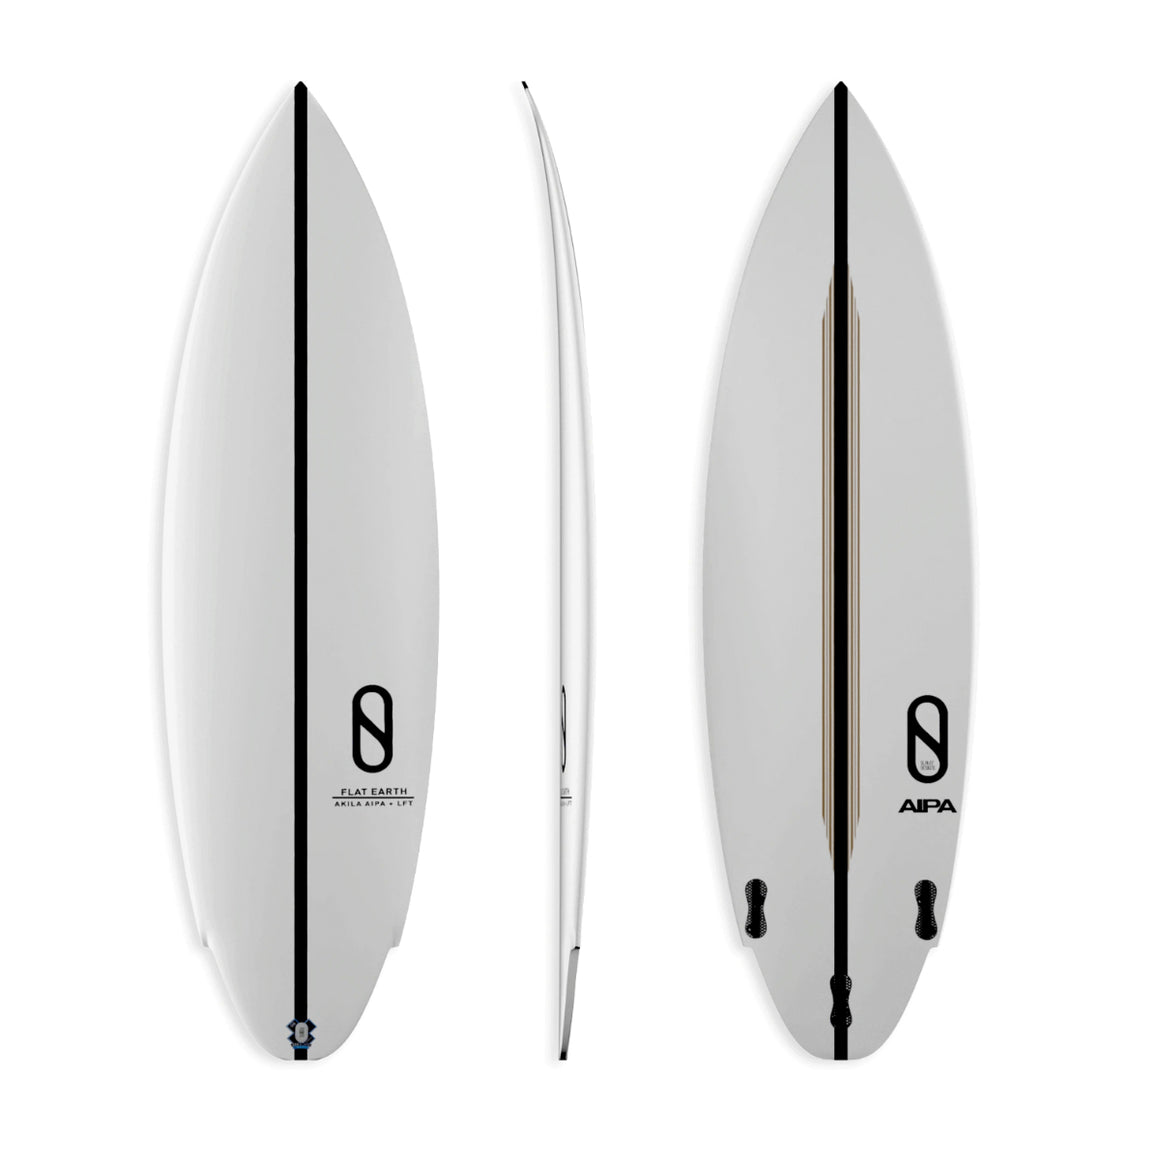 Firewire Slater Designs Flat Earth 5'8 - Futures